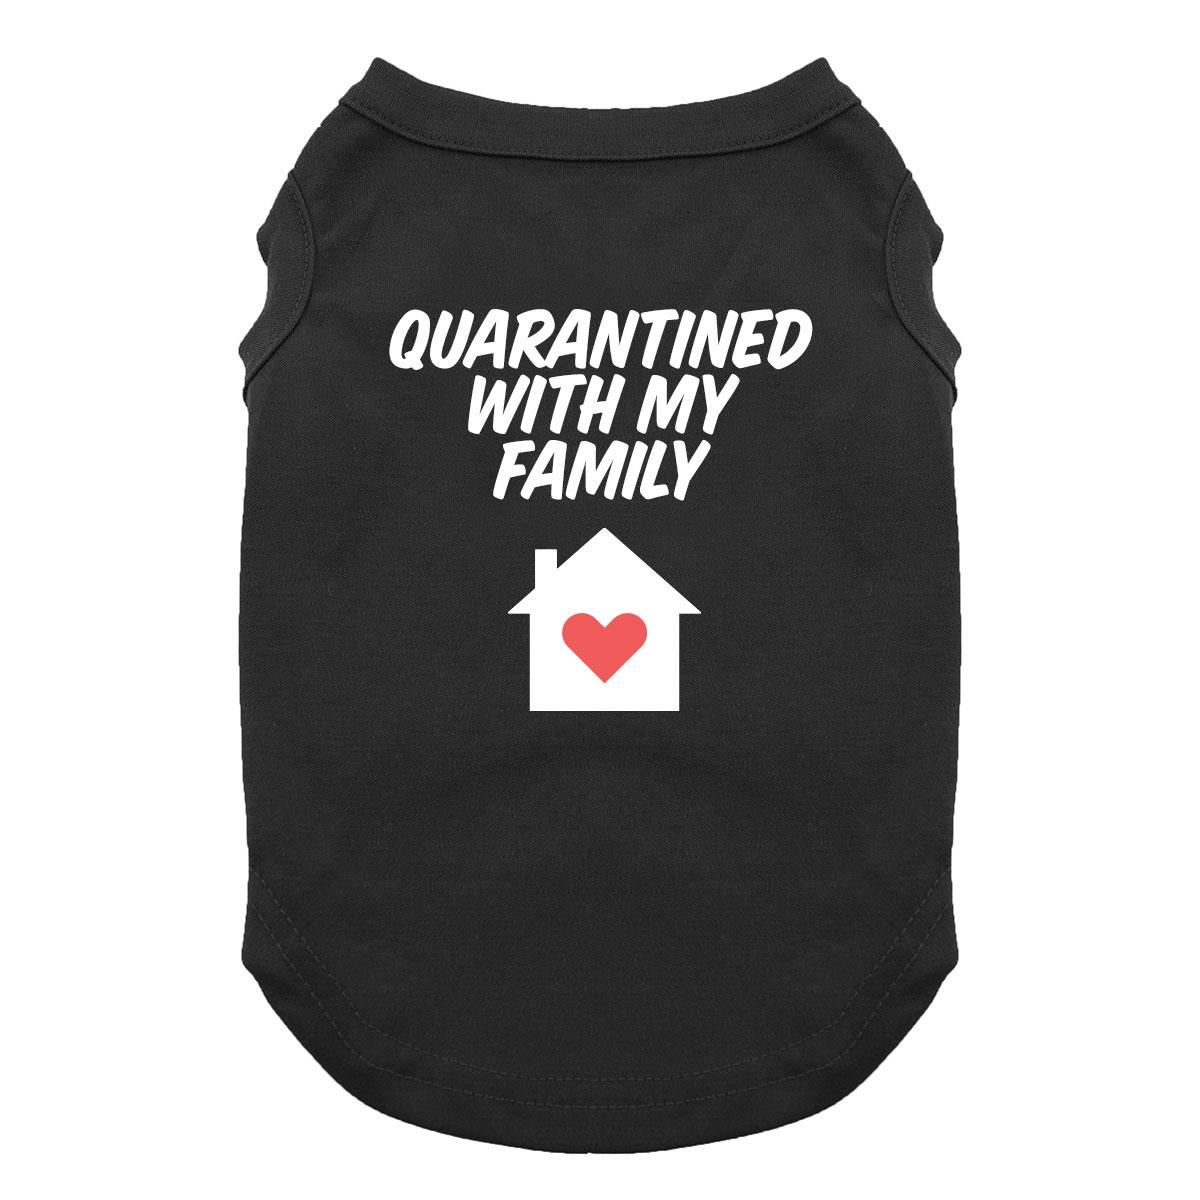 Quarantined With My Family Dog Shirt - Black